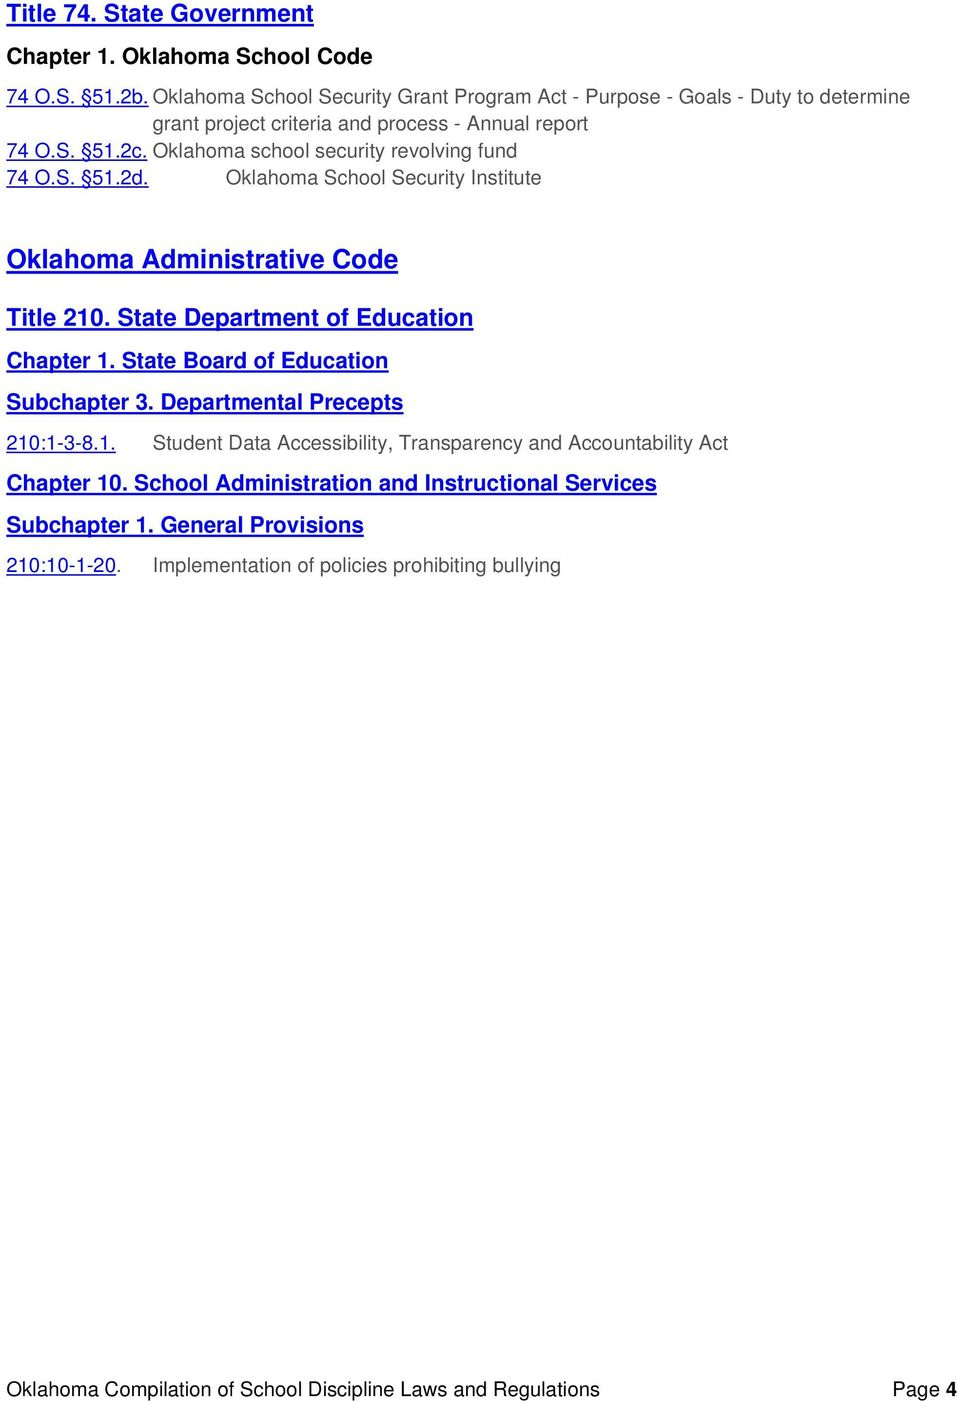 Oklahoma school security revolving fund 74 O.S. 51.2d. Oklahoma School Security Institute Oklahoma Administrative Code Title 210. State Department of Education Chapter 1.